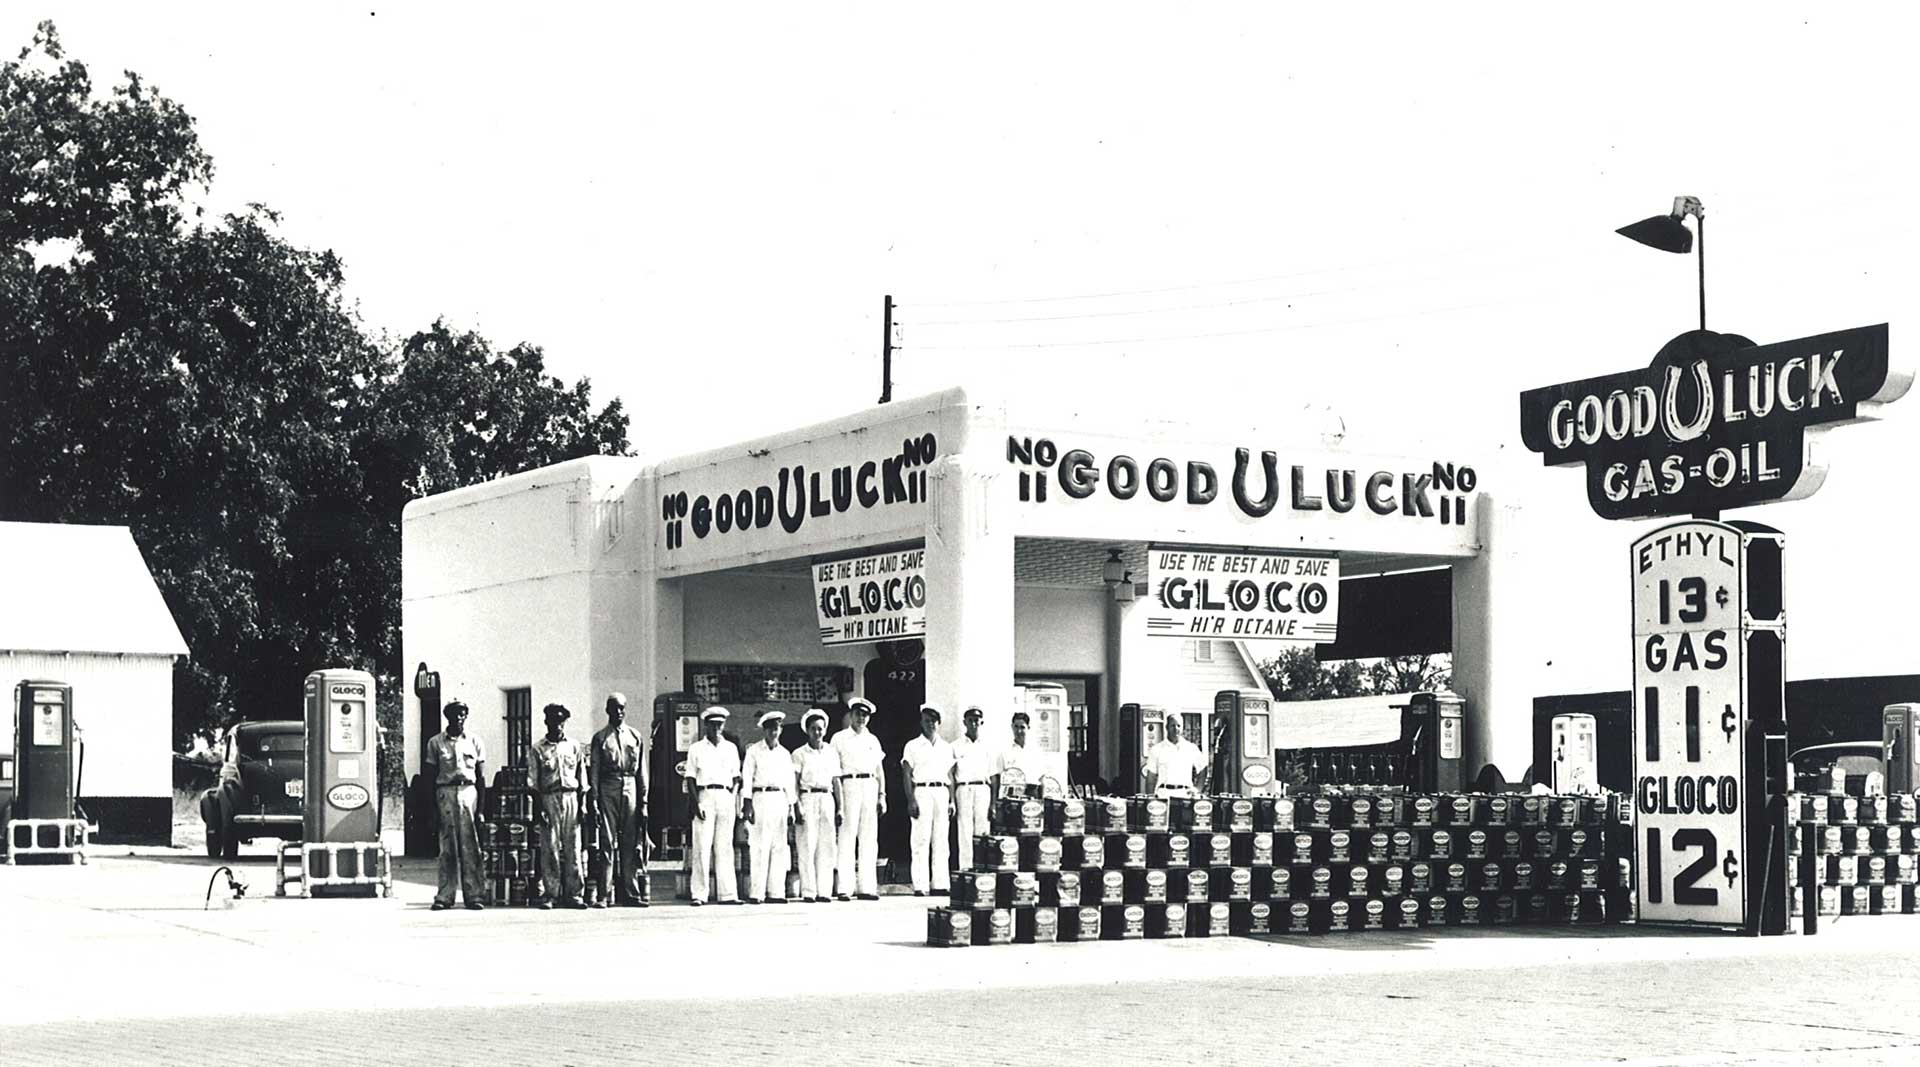 Home_3_Good_Luck_Oil_Company_Service_GLOCO_Petroleum_Petroliana_Ethyl_Gasoline_Fuel_Signs_Collectables_Store_Museum_History_Dallas_Fort_Worth_Texas_Gas_Drepression_Era_Art_Deco_Architecture.jpg